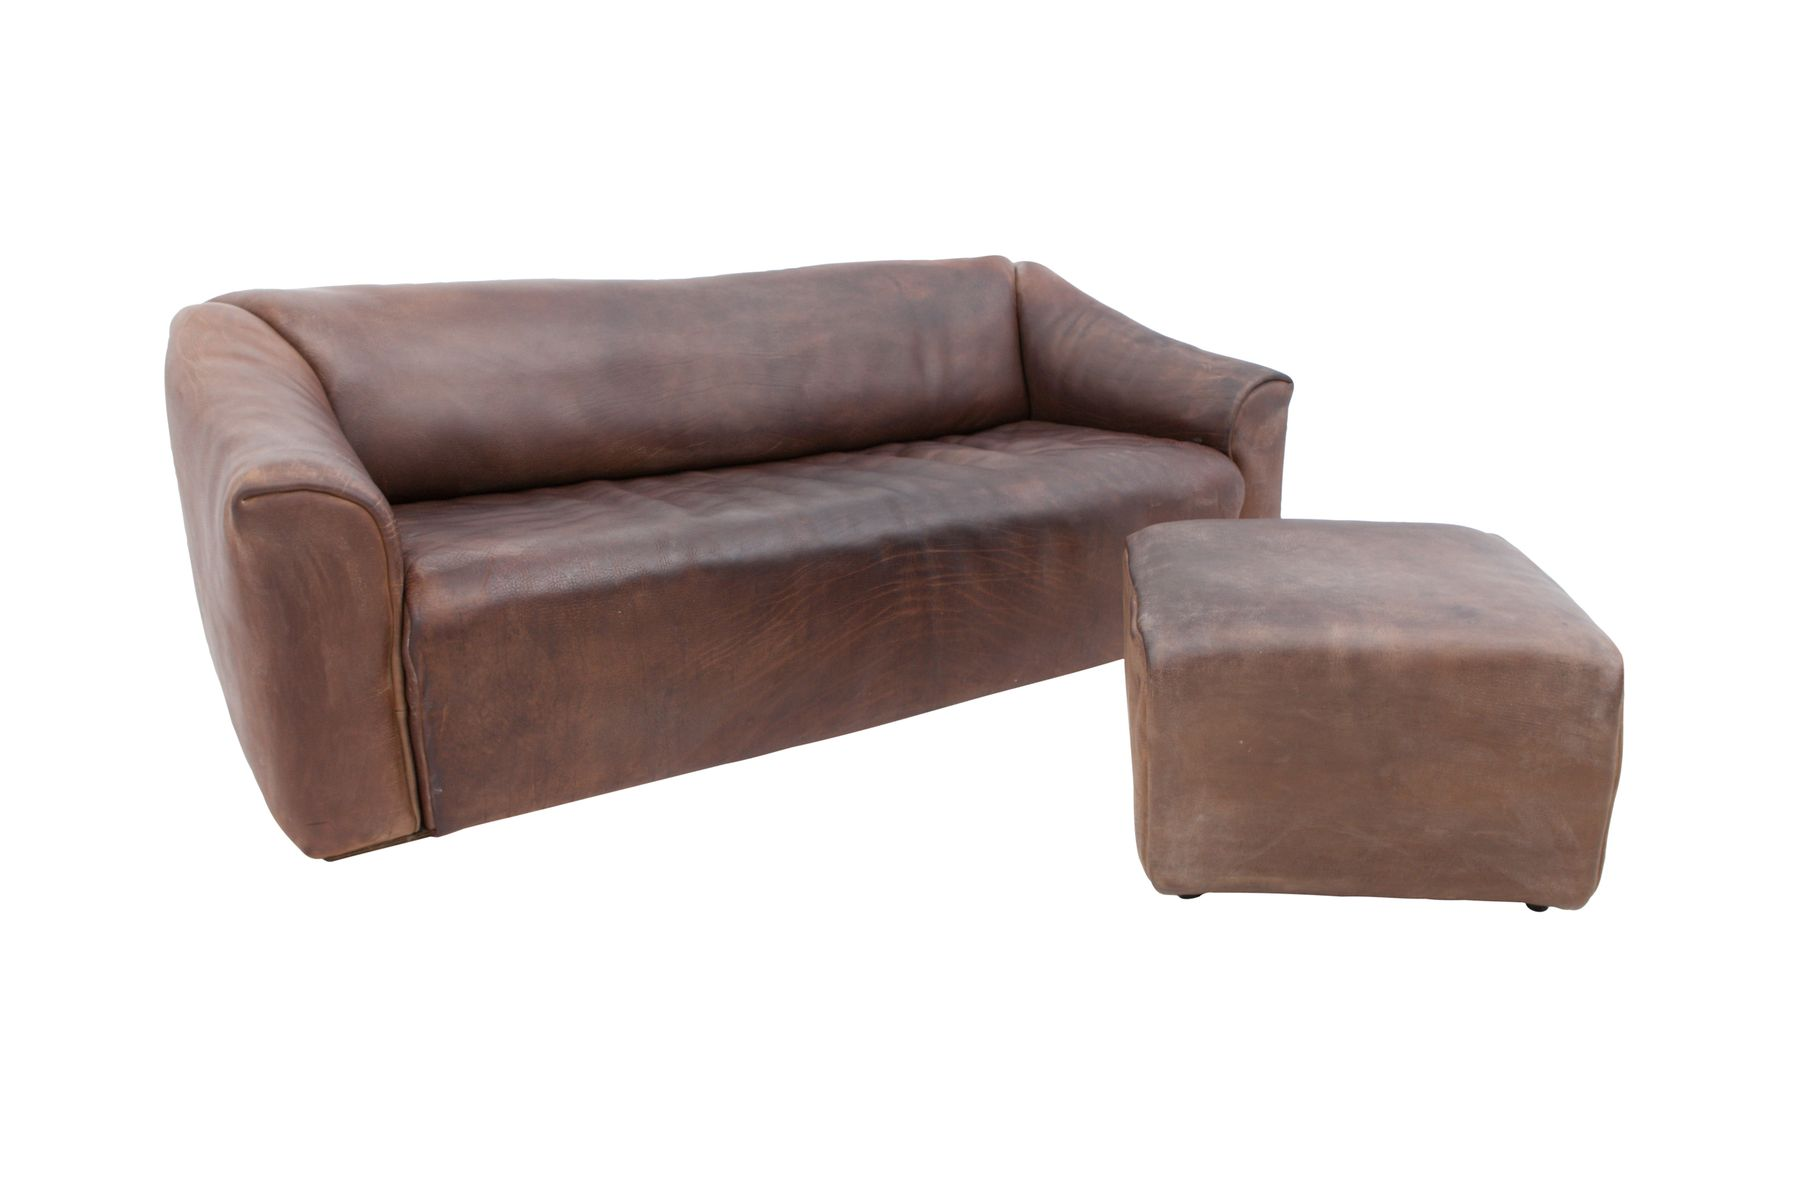 ds 47 leather sofa with ottoman from de sede 1970s for. Black Bedroom Furniture Sets. Home Design Ideas